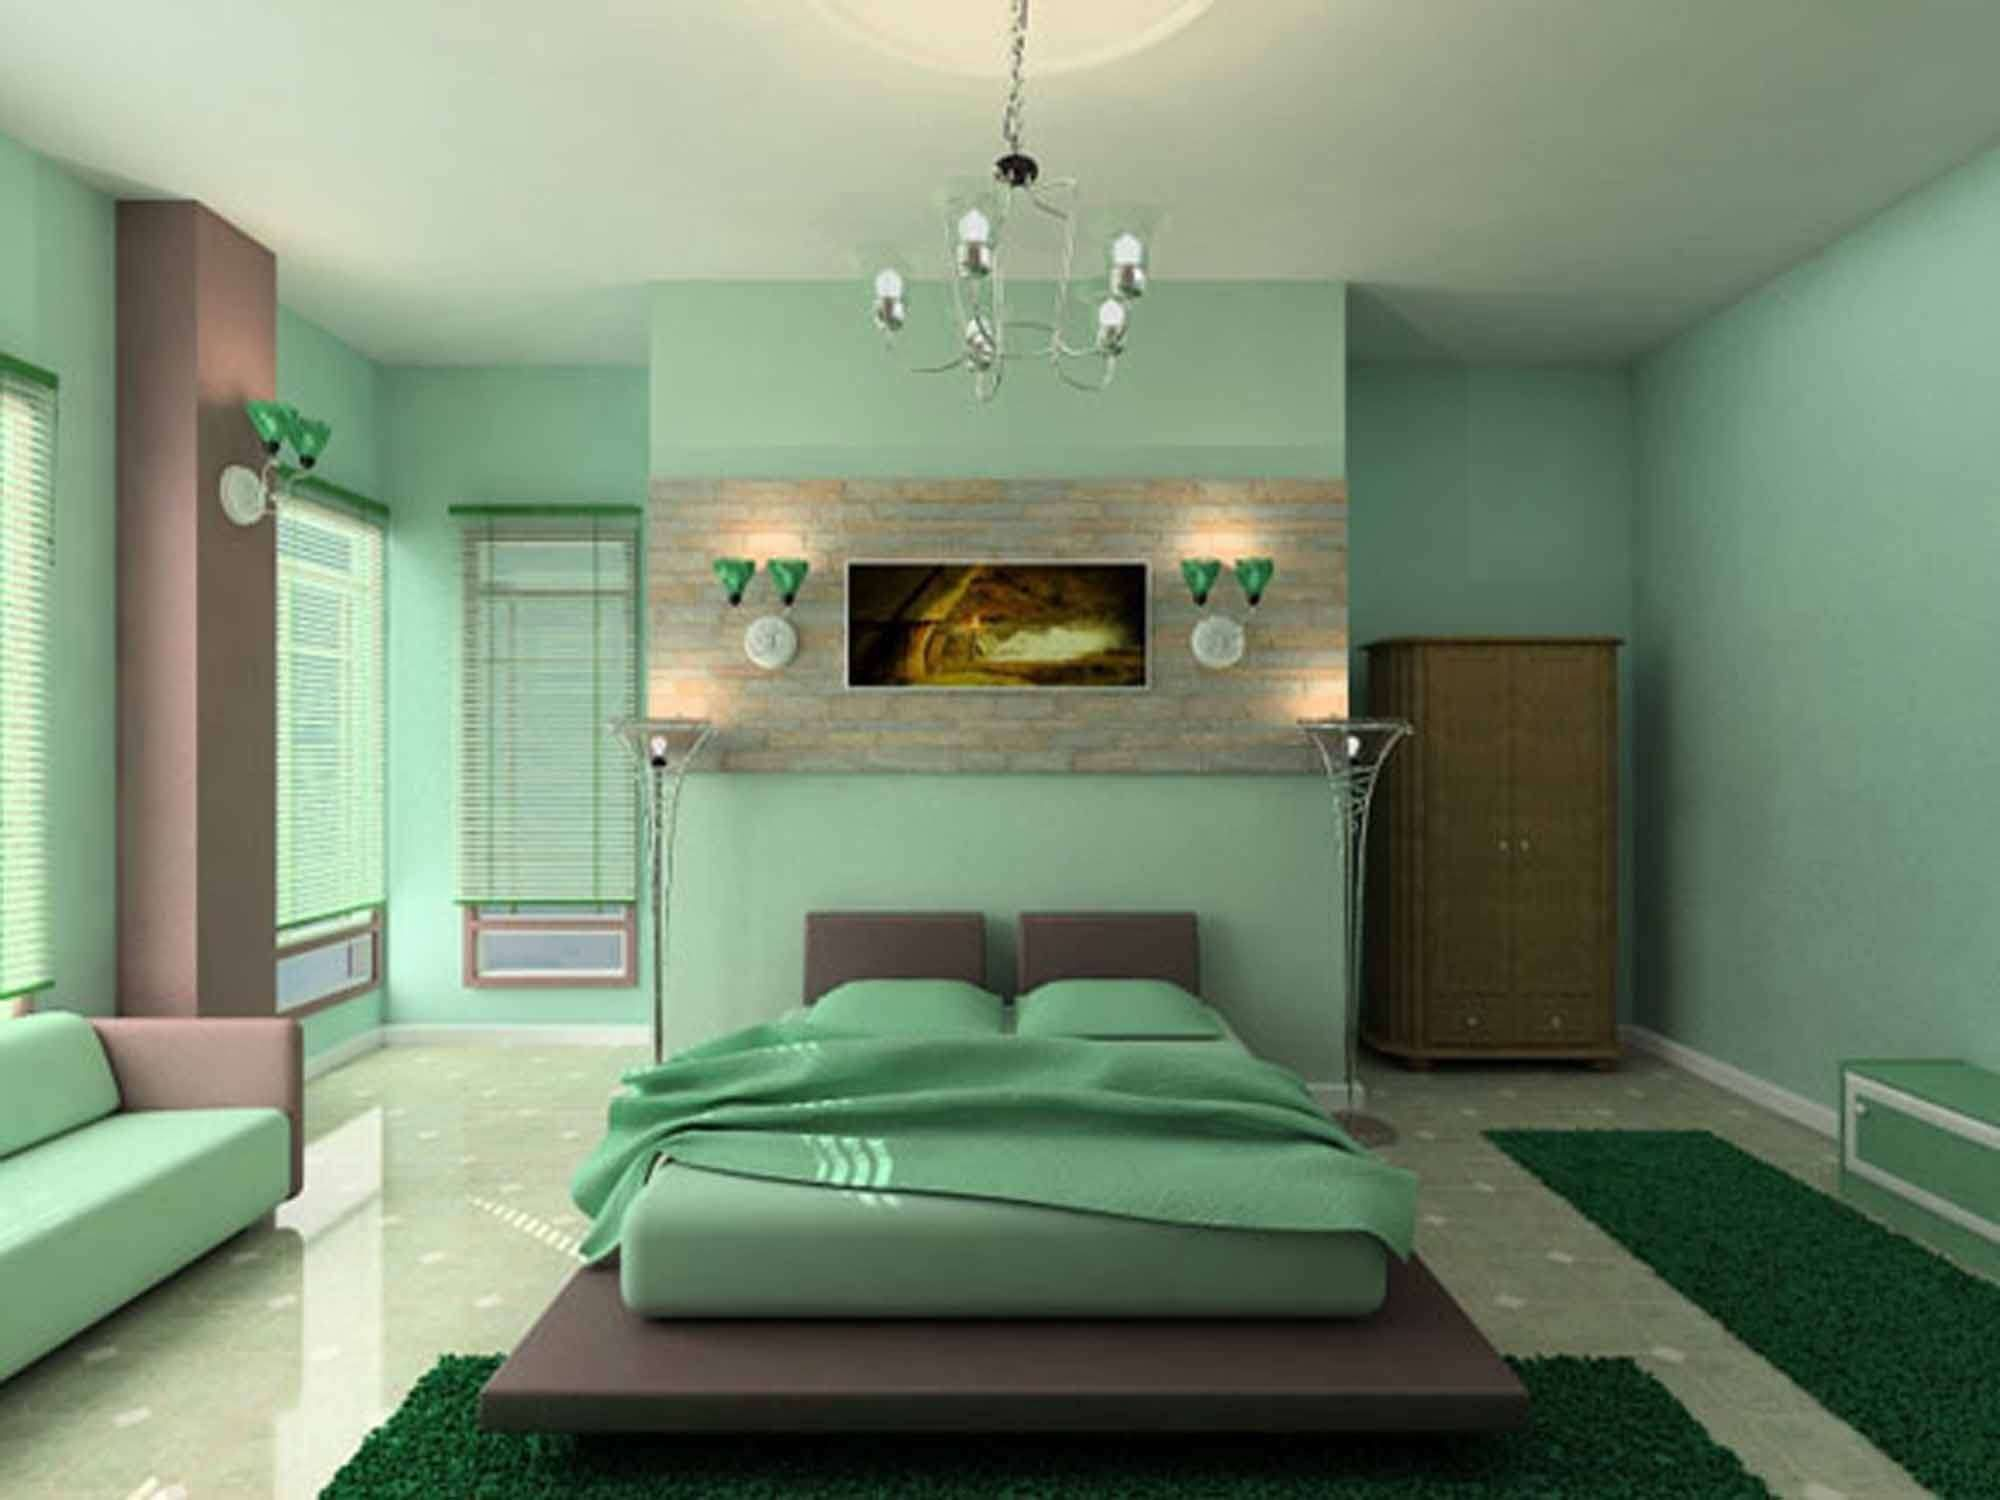 Green Wall Paint For Bedroom Marvellous Best Paint Color For Small Bedroom And Wall Colors For .